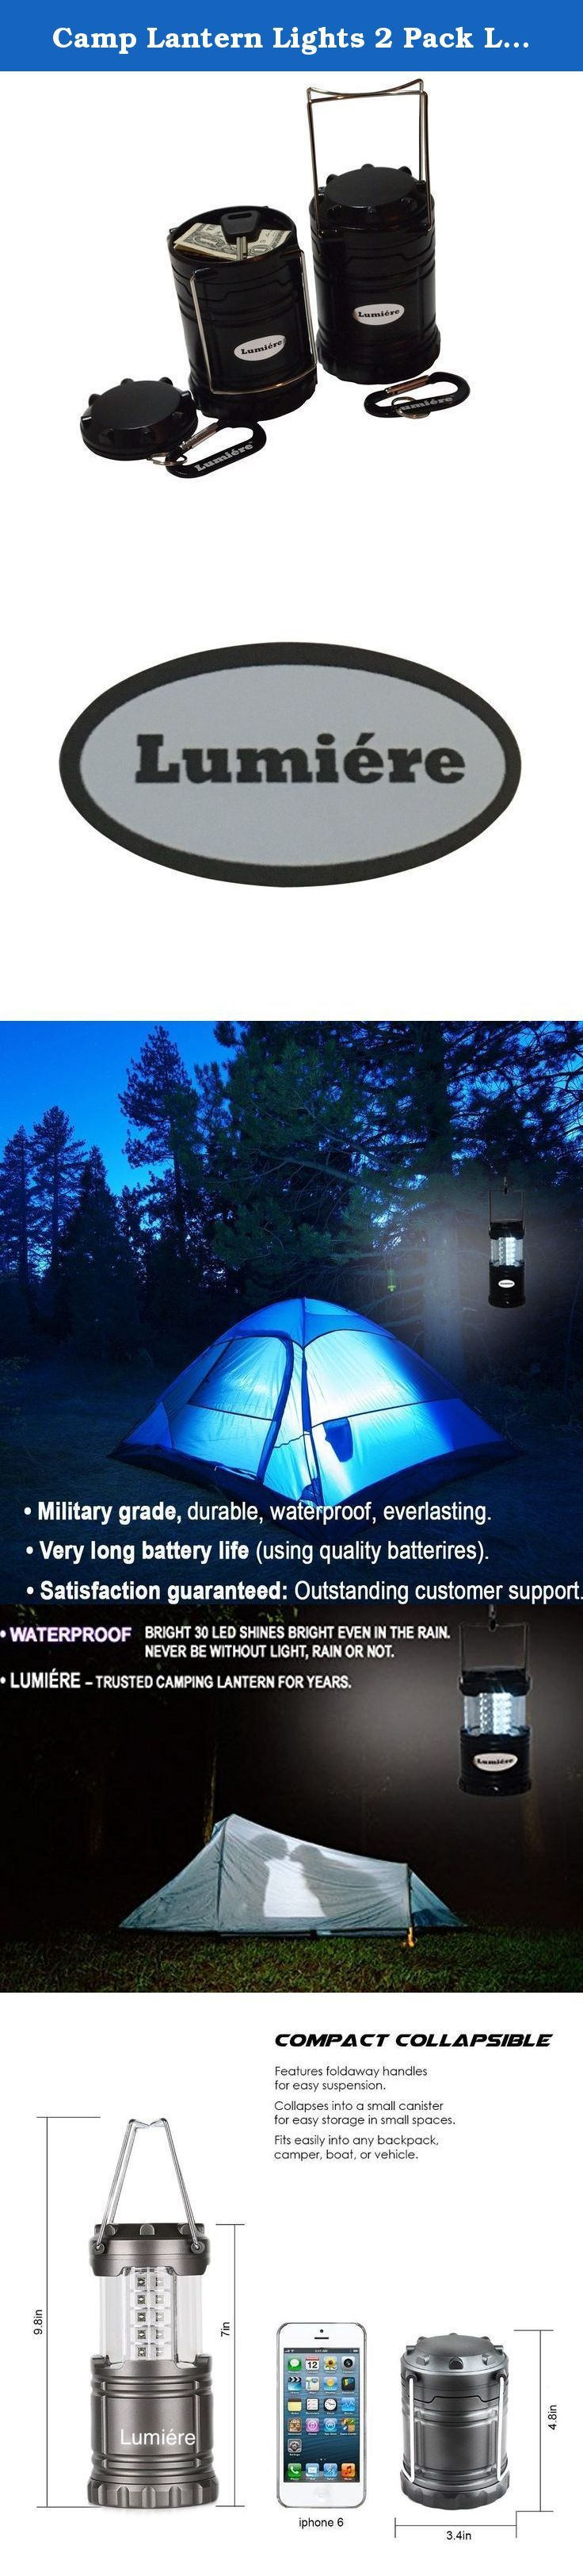 Camp Lantern Lights 2 Pack LED Black Battery Operated Portable and Collapsable Ideal for Boats Camping Backpack Emergencies Hurricane Power Outages Bedside Road Side Room Batteries Not Included. ARE YOU INTO CAMPING, BOATING OR BACKPACKING? OR SIMPLY NEED A LANTERN FOR EMERGENCY SITUATIONS, HURRICANE, POWER OUTAGES OR A HANDY NIGHT LIGHT? OUR LUMIERE LED CAMP LANTERN IS THE ANSWER TO YOUR LIGHTING REQUIREMENTS - You get two camping lanterns to ensure you never run out of light at your…